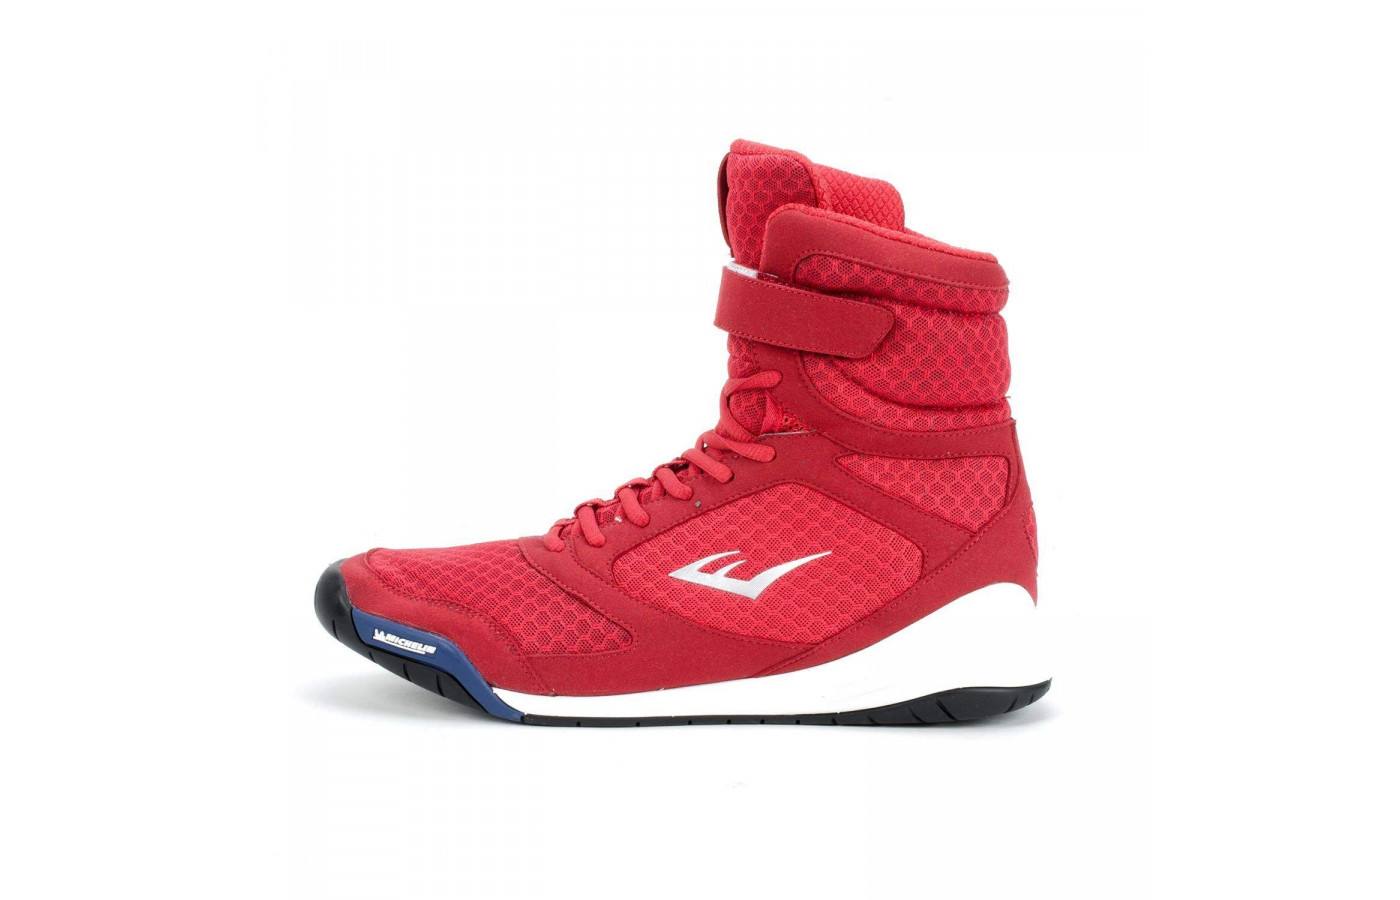 Everlast elite Side Red